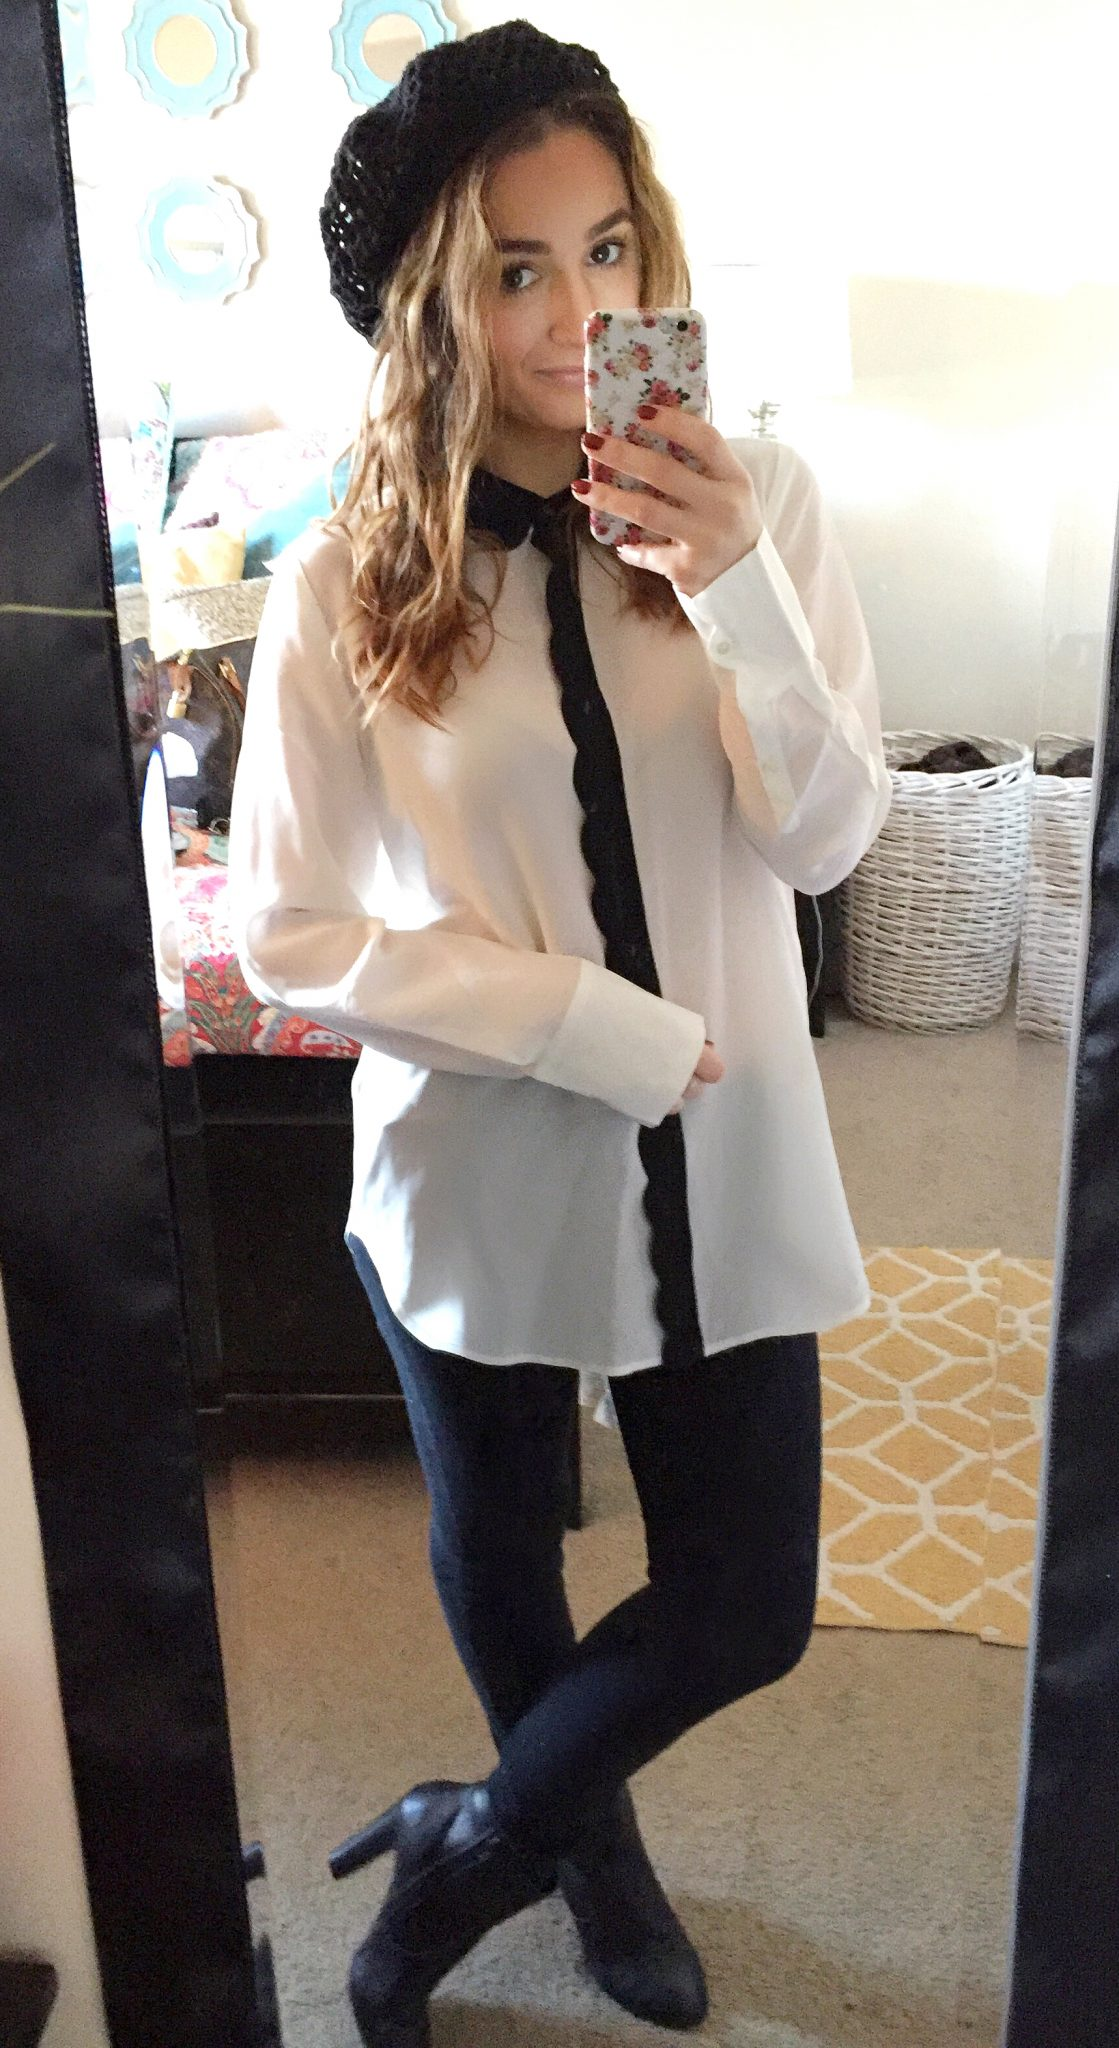 I let my boyfriend dress me - monday